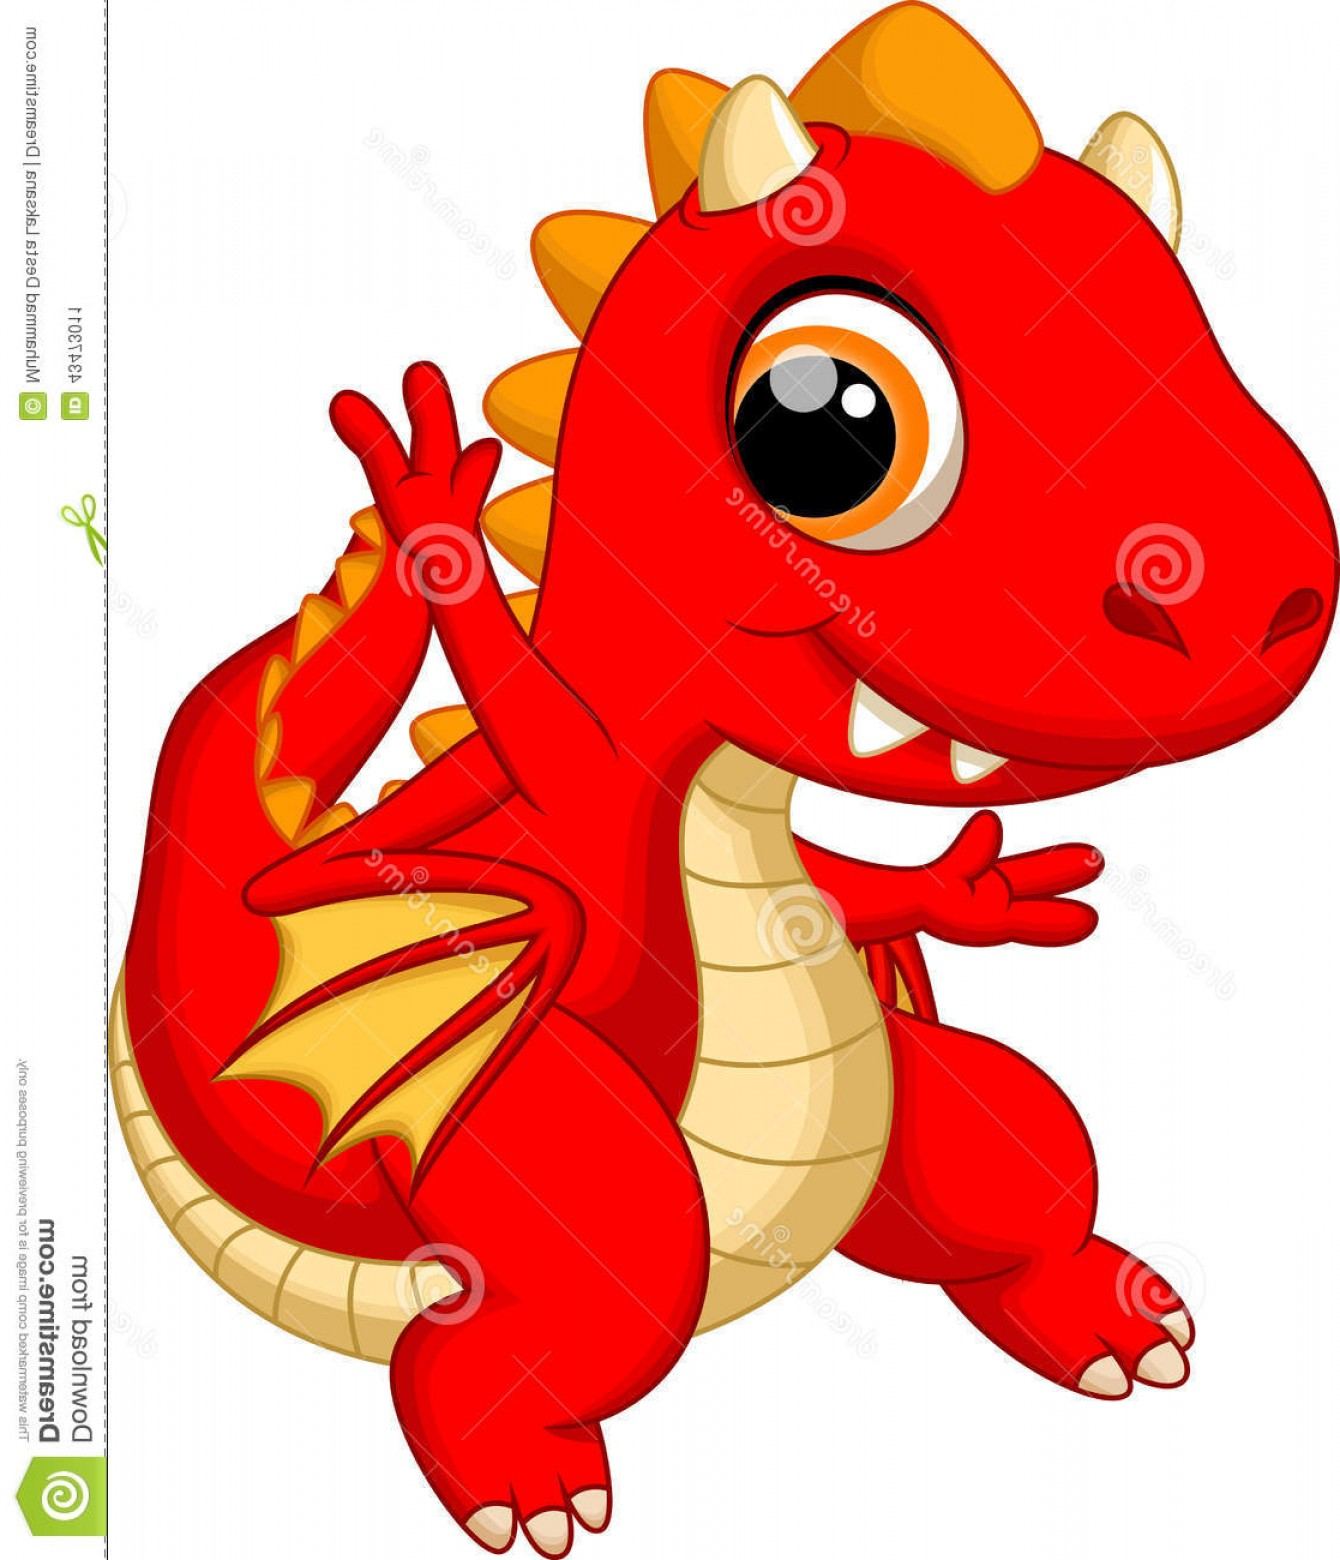 Baby Dragon Silhouette Vector: Stock Illustration Cute Baby Dragon Cartoon White Background Image